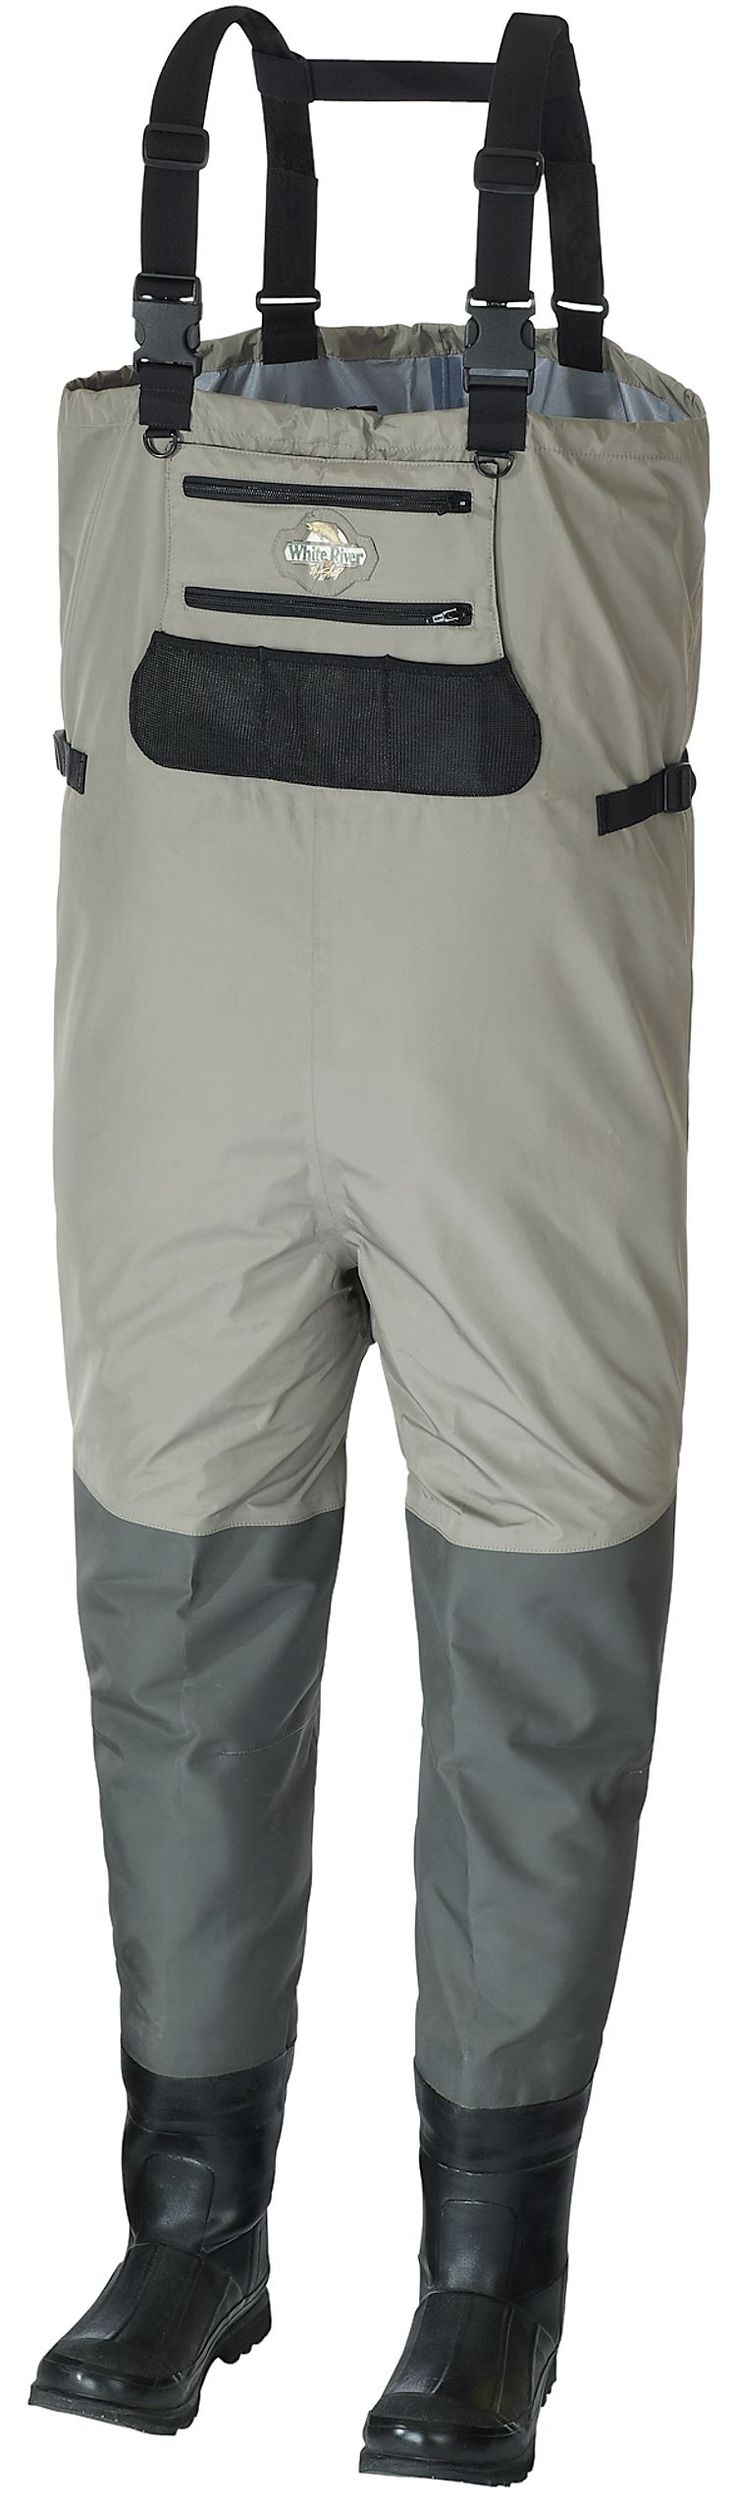 White river fly shop eco clear breathable waders for men for Fly fishing waders